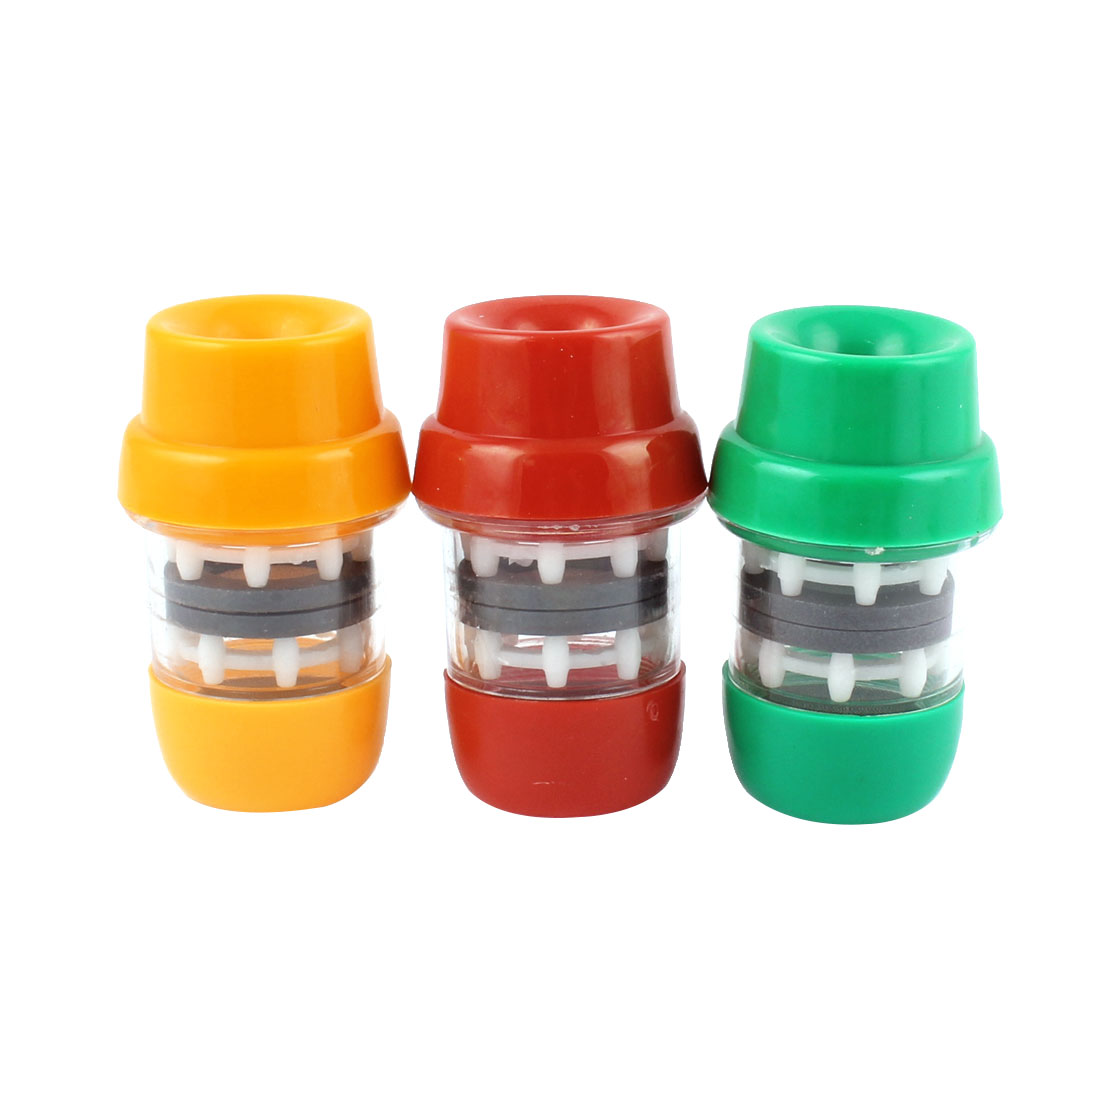 Plastic  Water Purifying Tap Faucet Magnetic Filter 3pcs Assorted Color